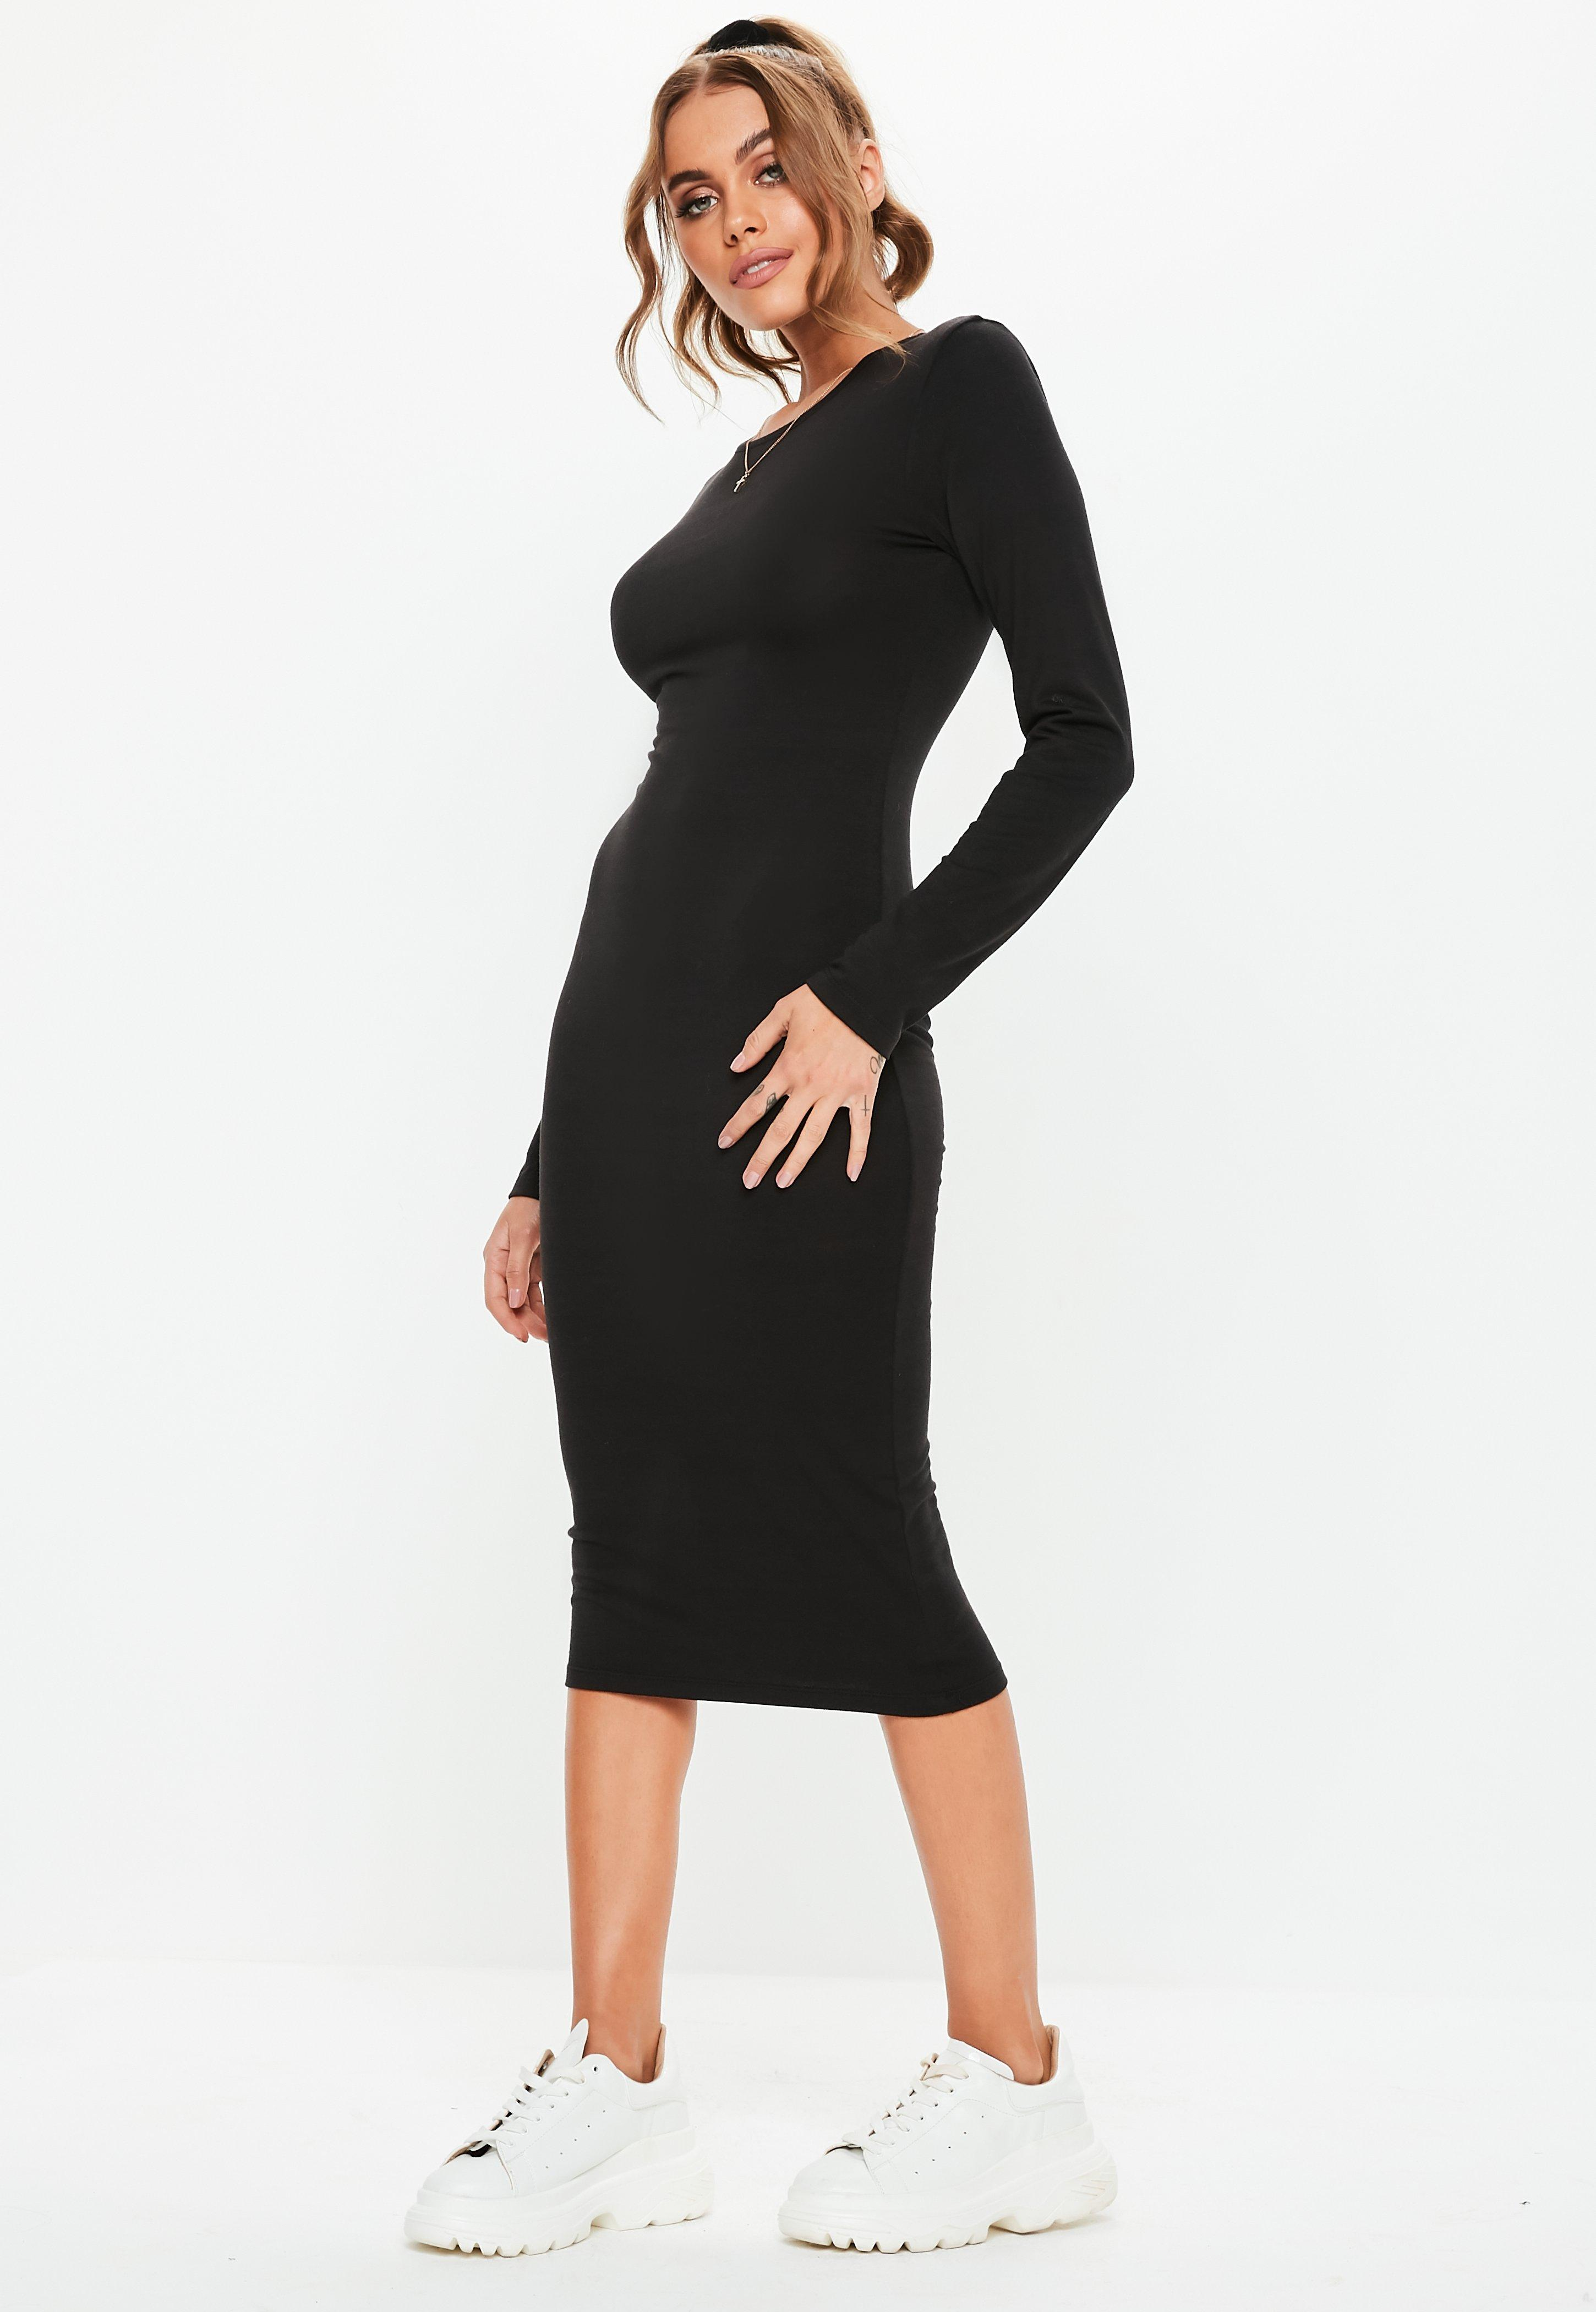 9a1f828552b Bodycon Dresses | Tight & Fitted Dresses - Missguided Australia